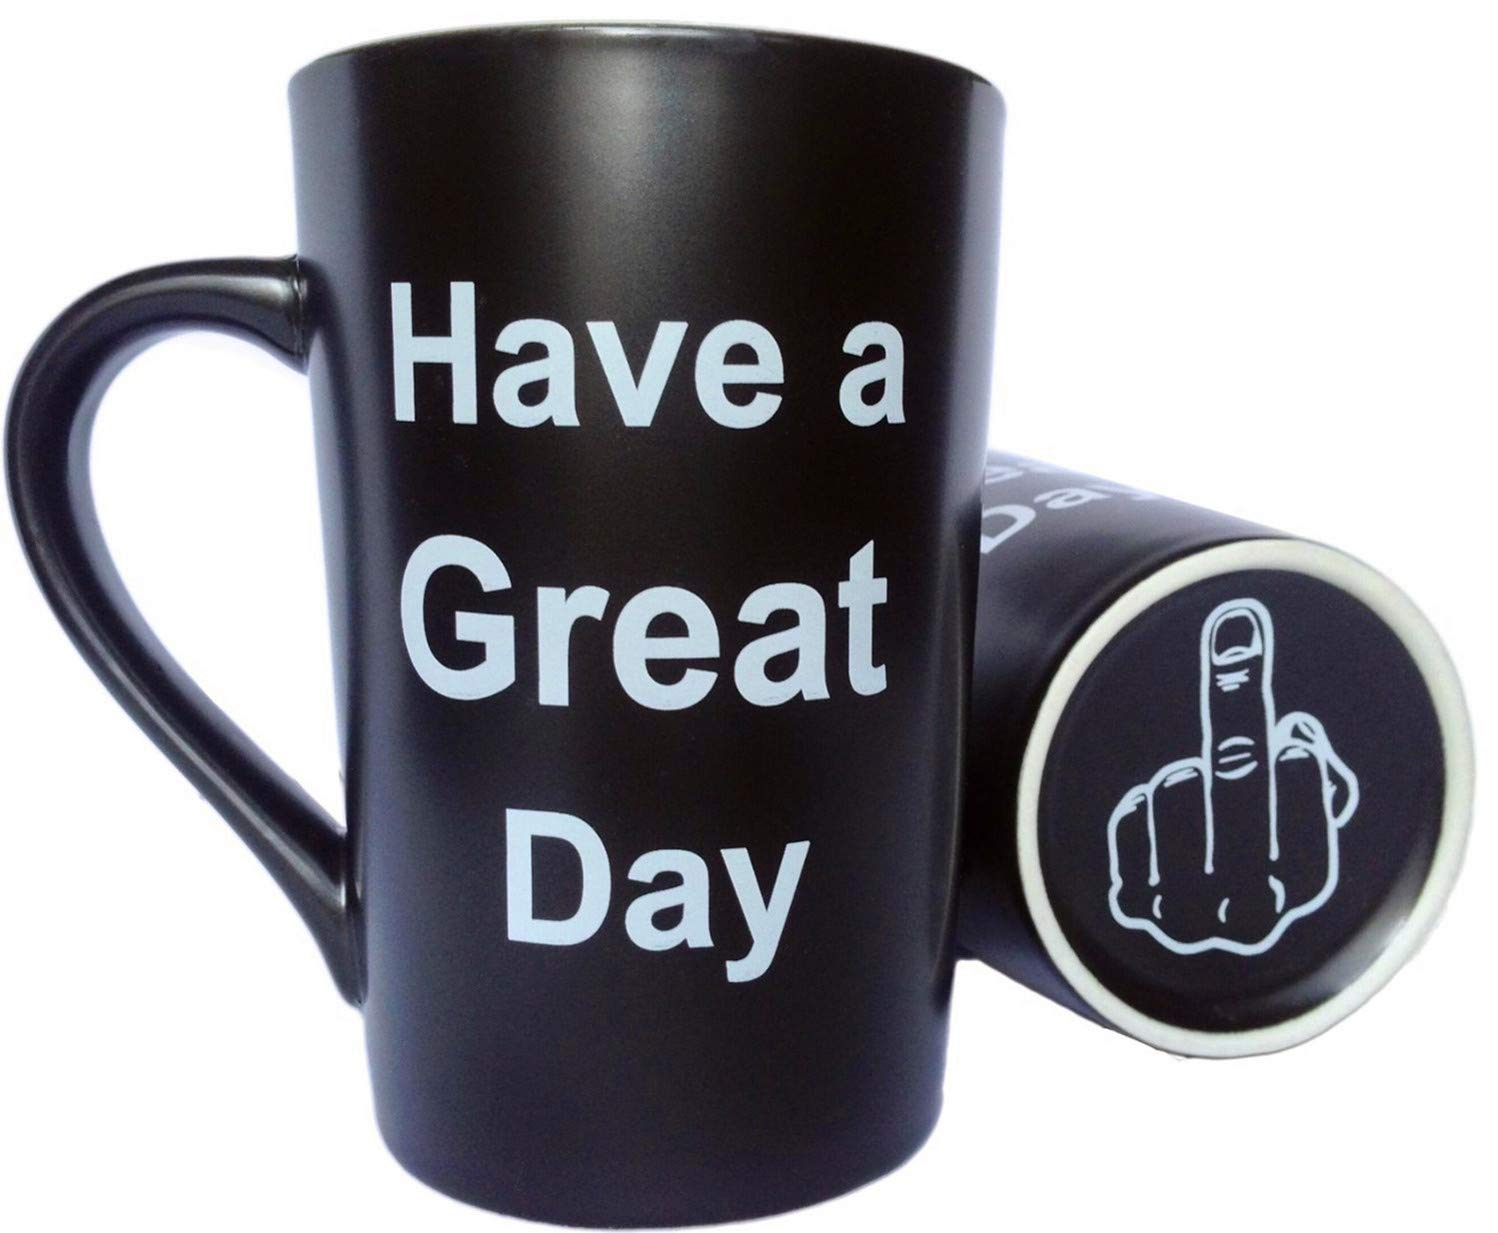 MAUAG Funny Unique Coffee Mugs - Have a Great Day Cute Cool Ceramic Cup Black, Best Holiday and Christmas Gag Gifts, 12 Oz by MAUAG (Image #1)